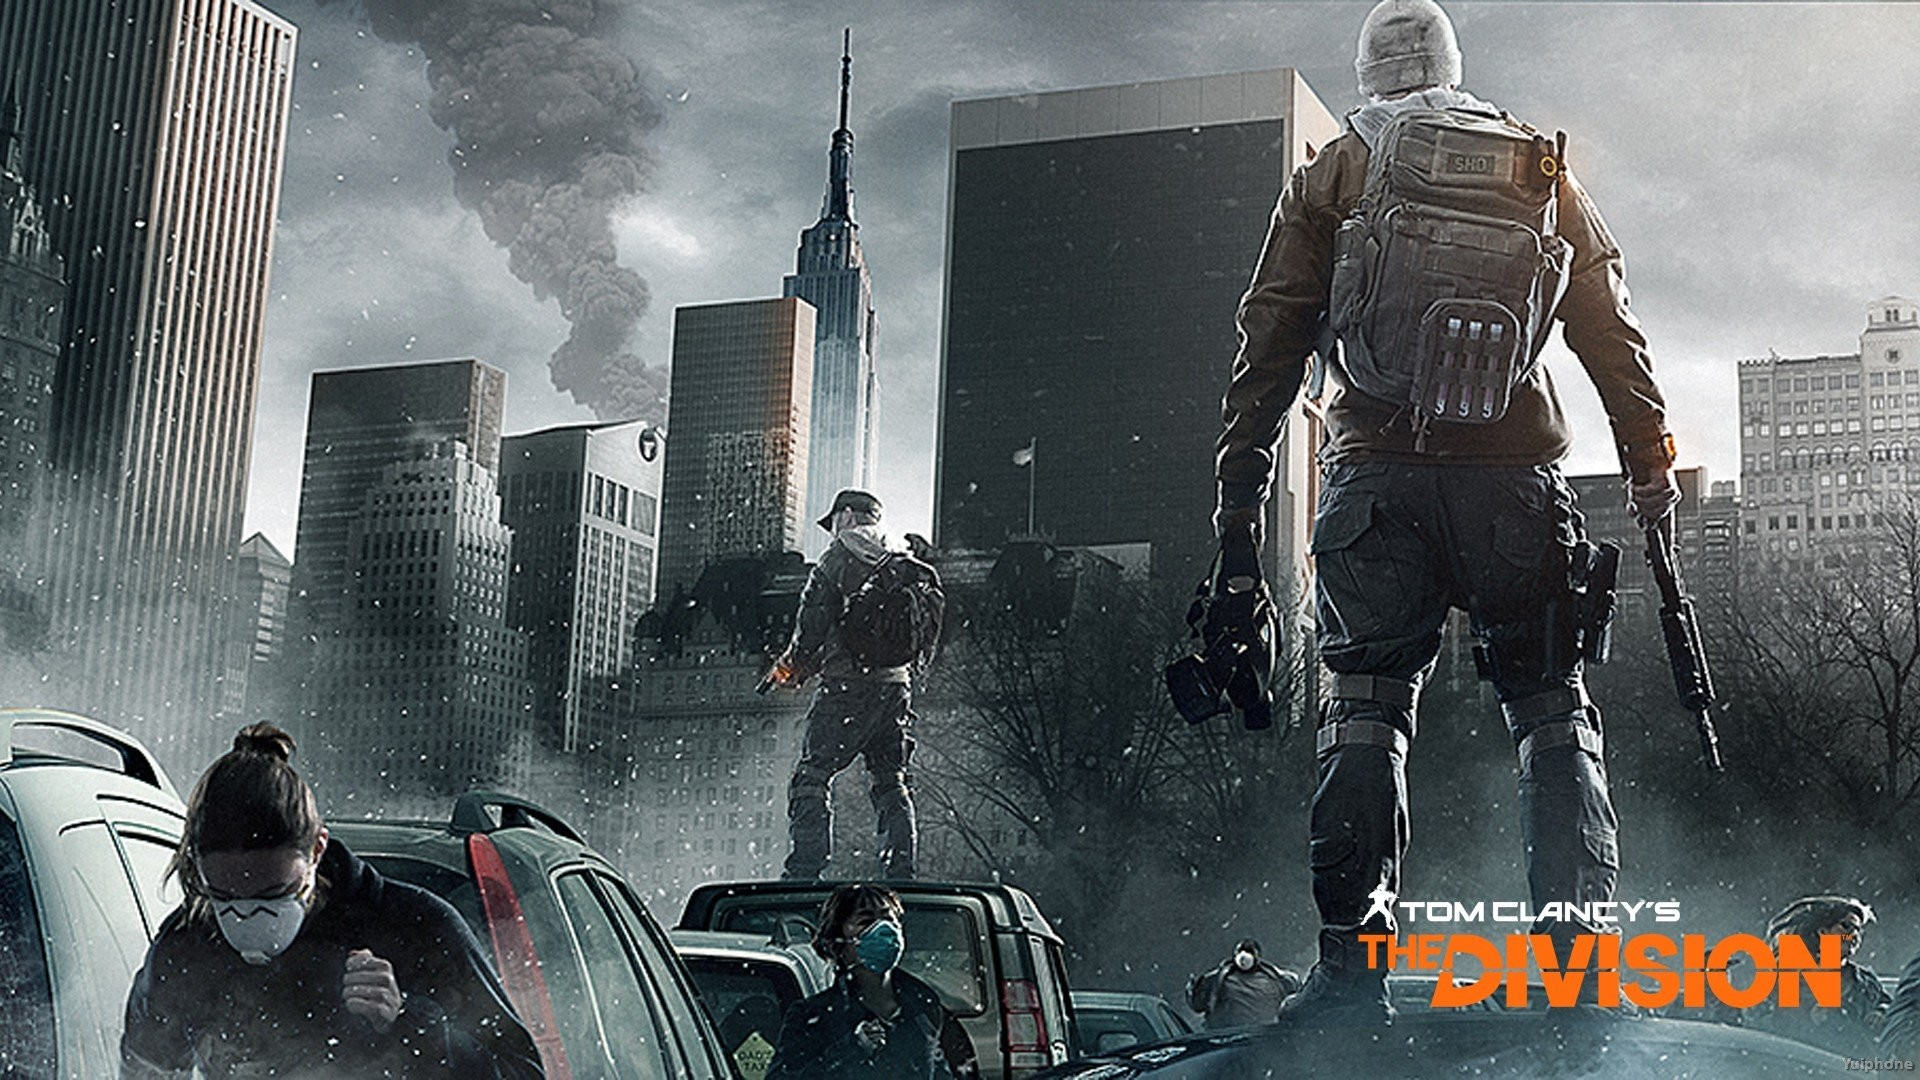 TOM CLANCYS DIVISION tactical shooter action rpg military online (34)  wallpaper | | 373923 | WallpaperUP